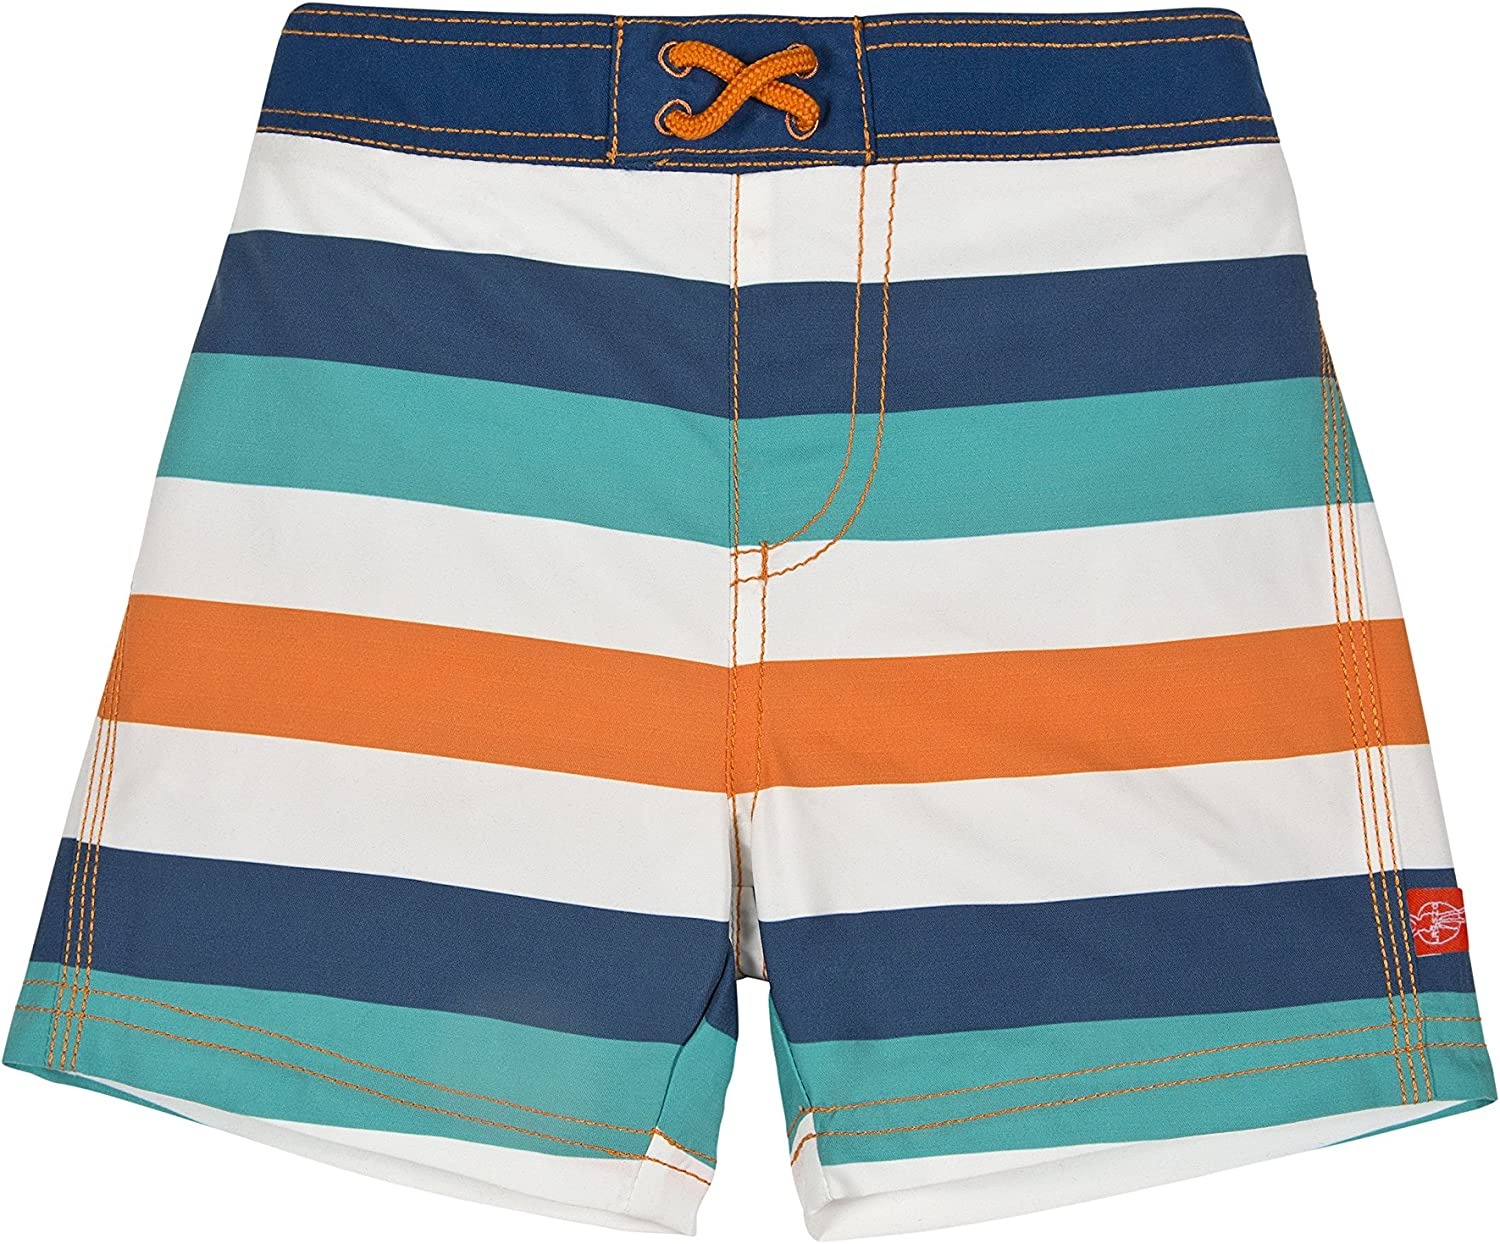 blue whale Lassig Splash and Fun Baby Board Shorts boys UV-protection 50+ S//6 Months